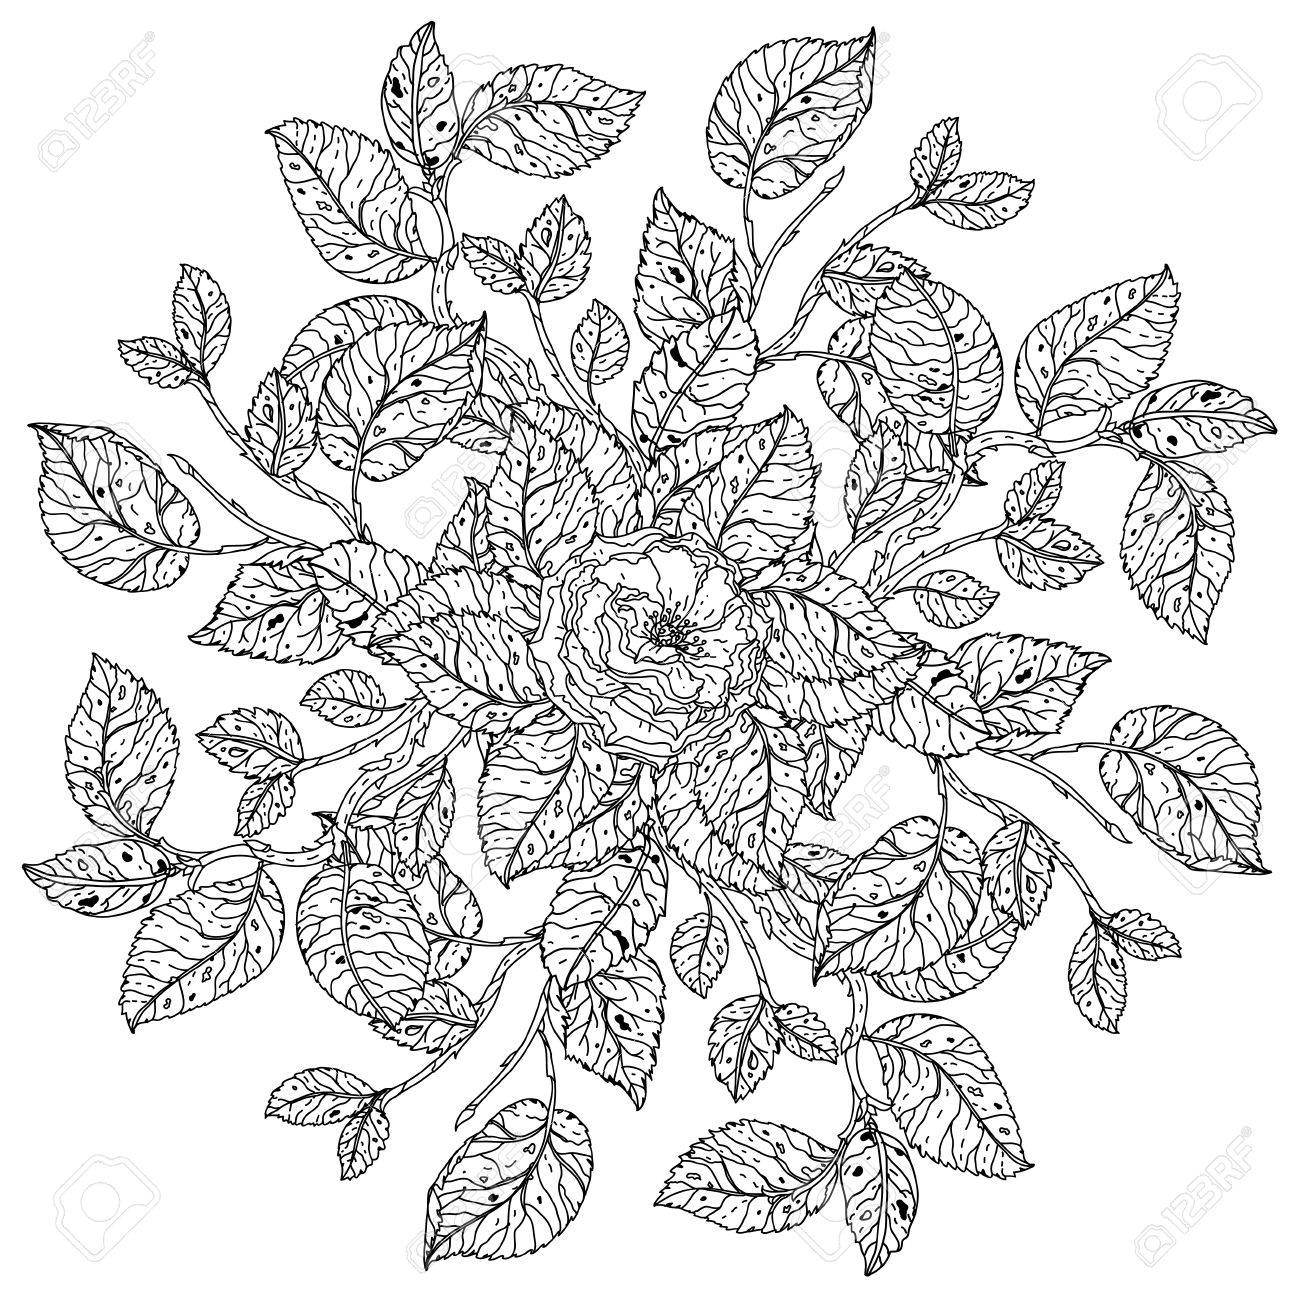 The coloring book poster - Vector Mandala Shaped Contoured Flowers Leaves Black And White For Coloring Book Or Poster Colouring Book Style Luxury Roses In Zenart Style